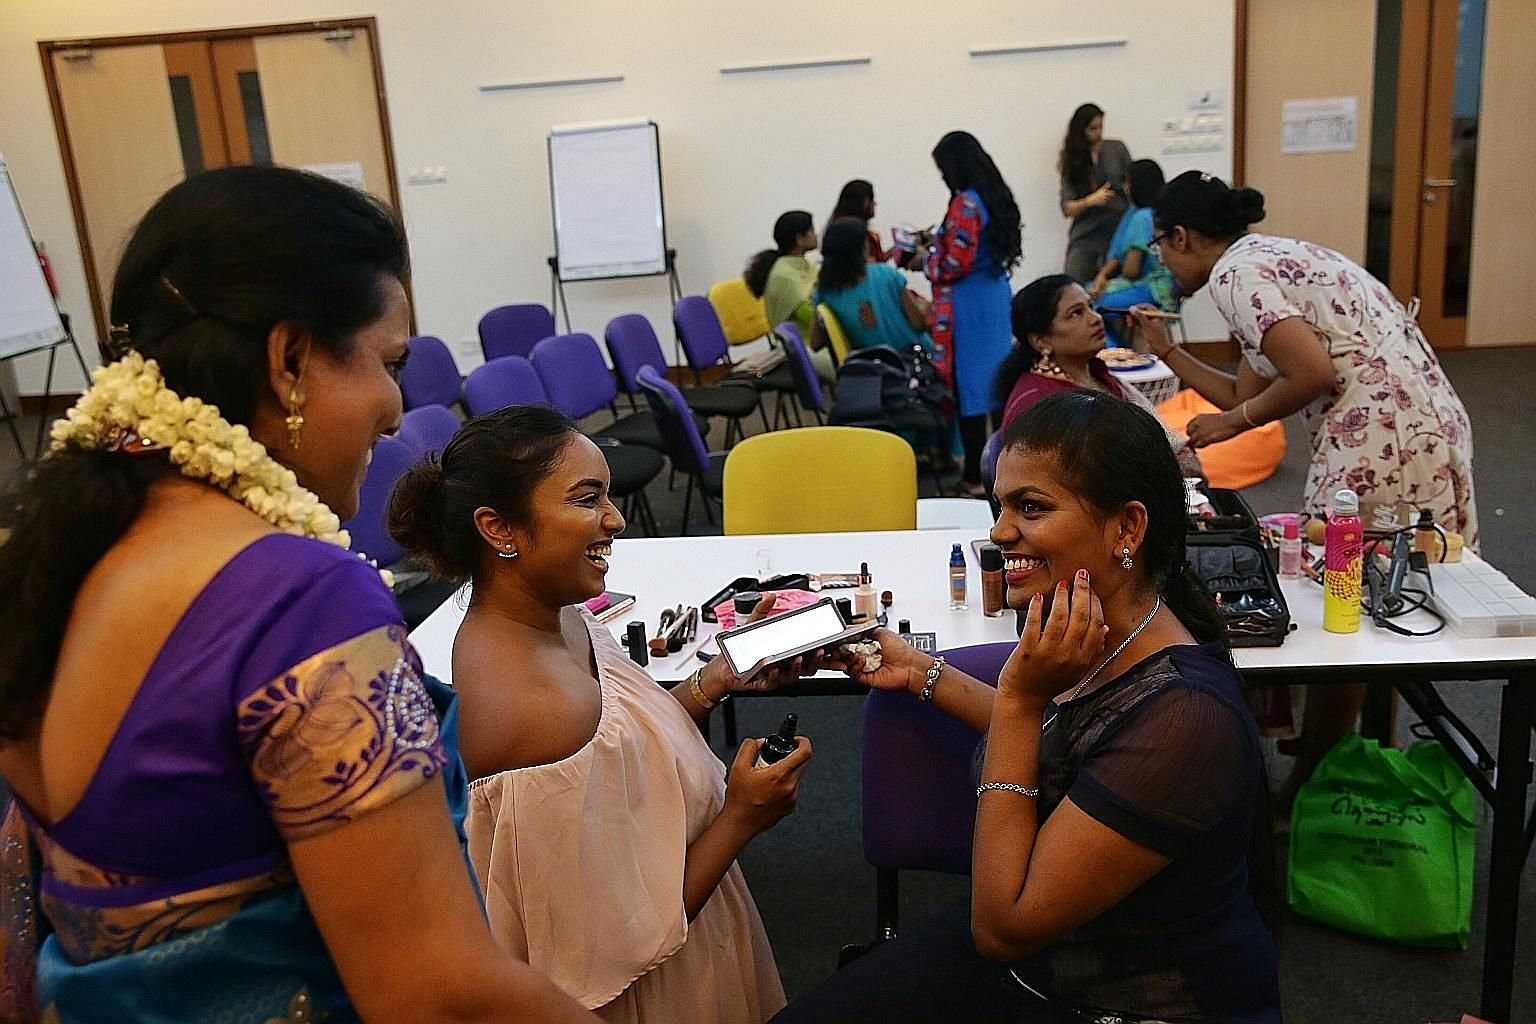 Indian migrant worker Anukrishna (at right) all smiles after having her make-up done by volunteer Aavishka Ragam during a Mother's Day event organised by Women of Shakti at the National Volunteer and Philanthropy Centre's A Good Space in May.